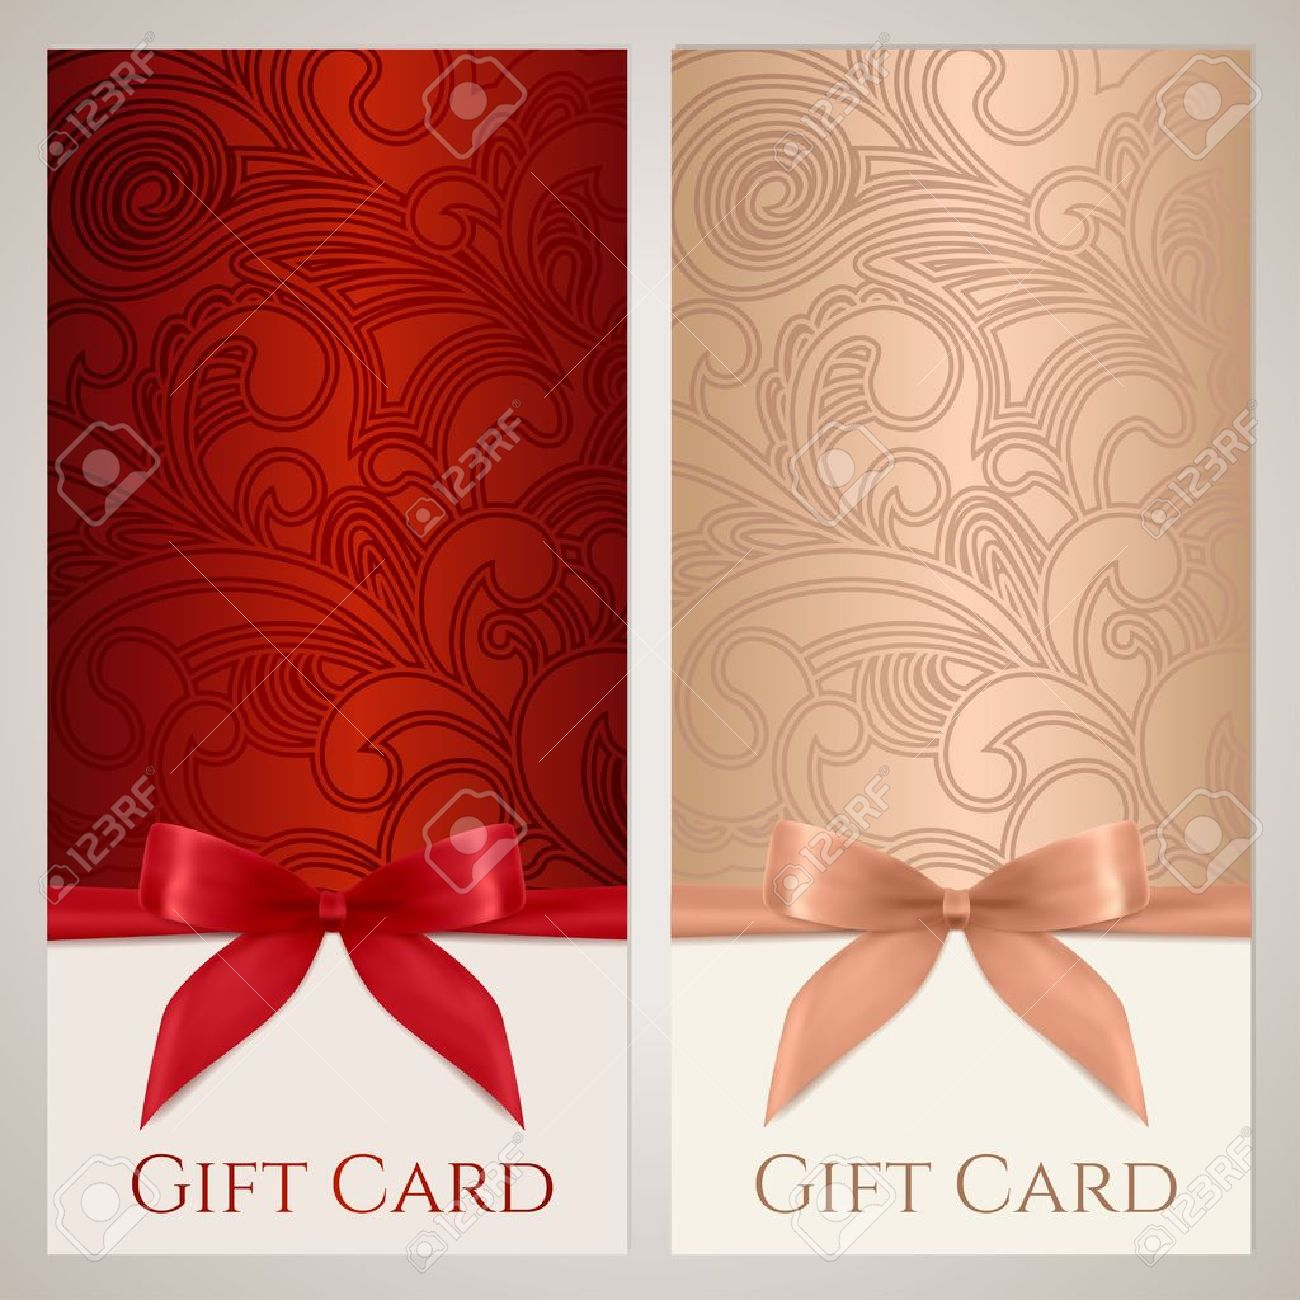 2 749 christmas coupon set stock illustrations cliparts and christmas coupon set gift certificate gift card voucher coupon template floral